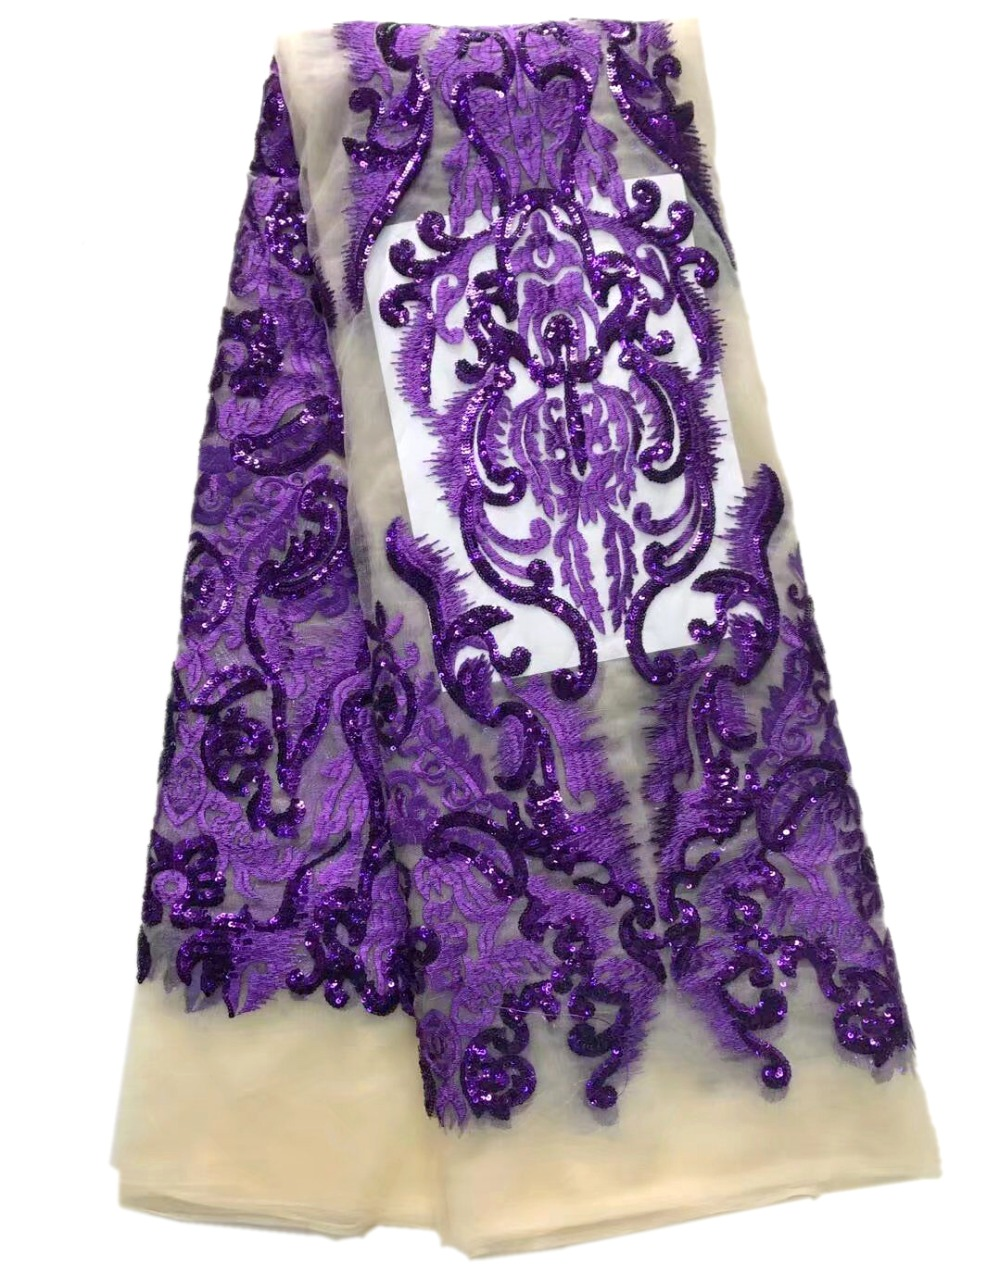 African French Lace For Wedding French Lace Fabric High Quality With Sequins Embroidered For dressesAfrican French Lace For Wedding French Lace Fabric High Quality With Sequins Embroidered For dresses